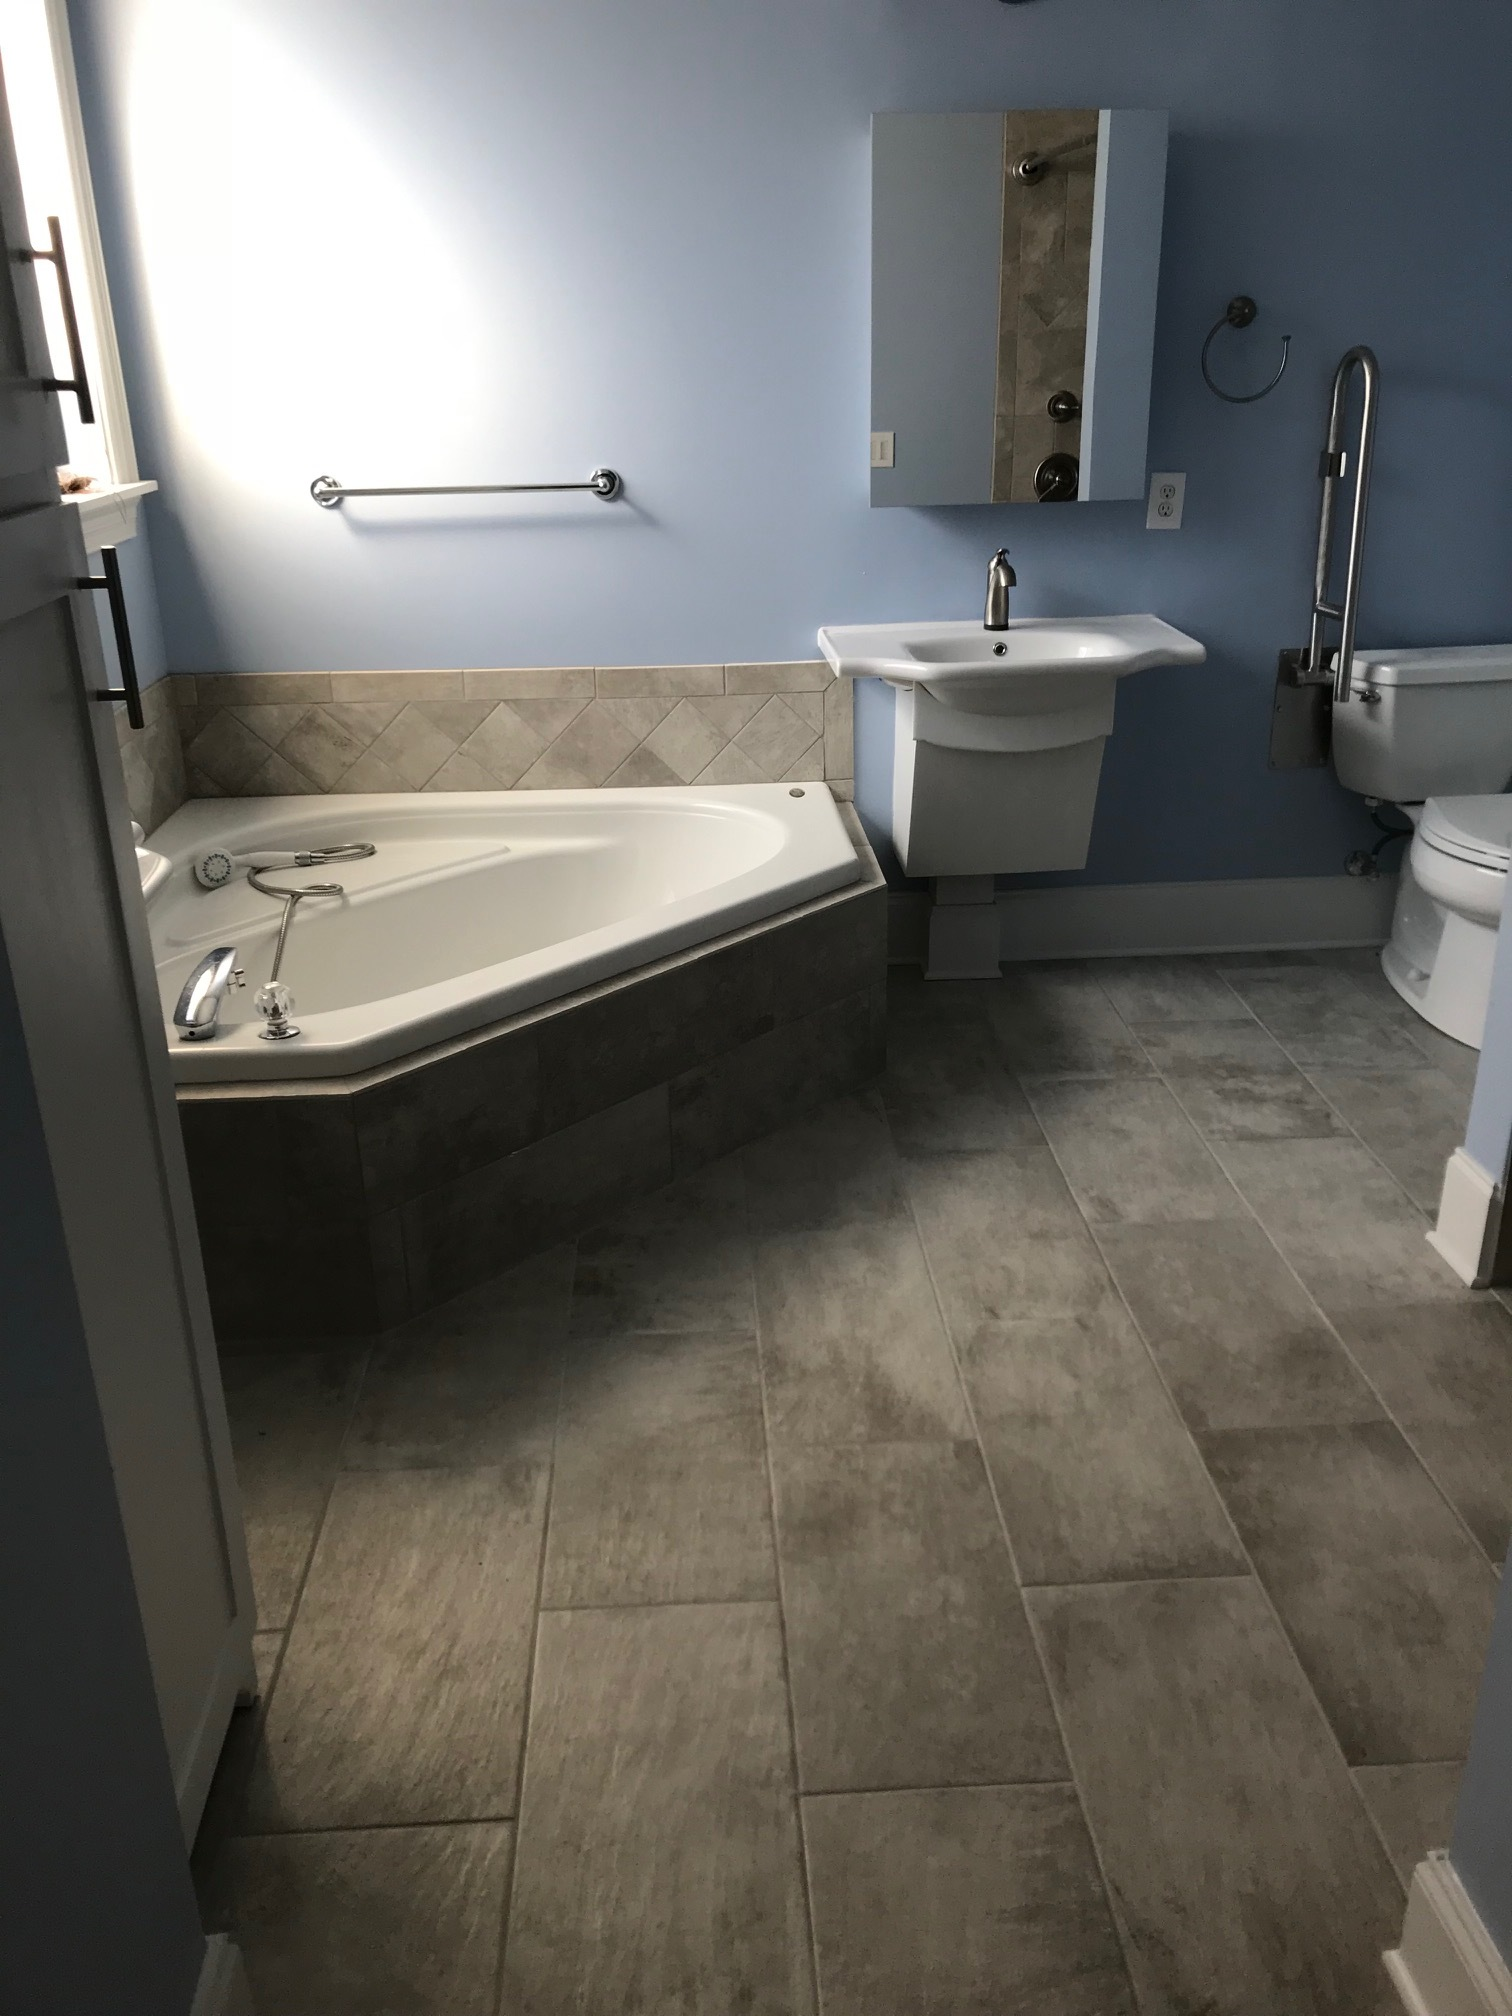 Large format tile bath floor